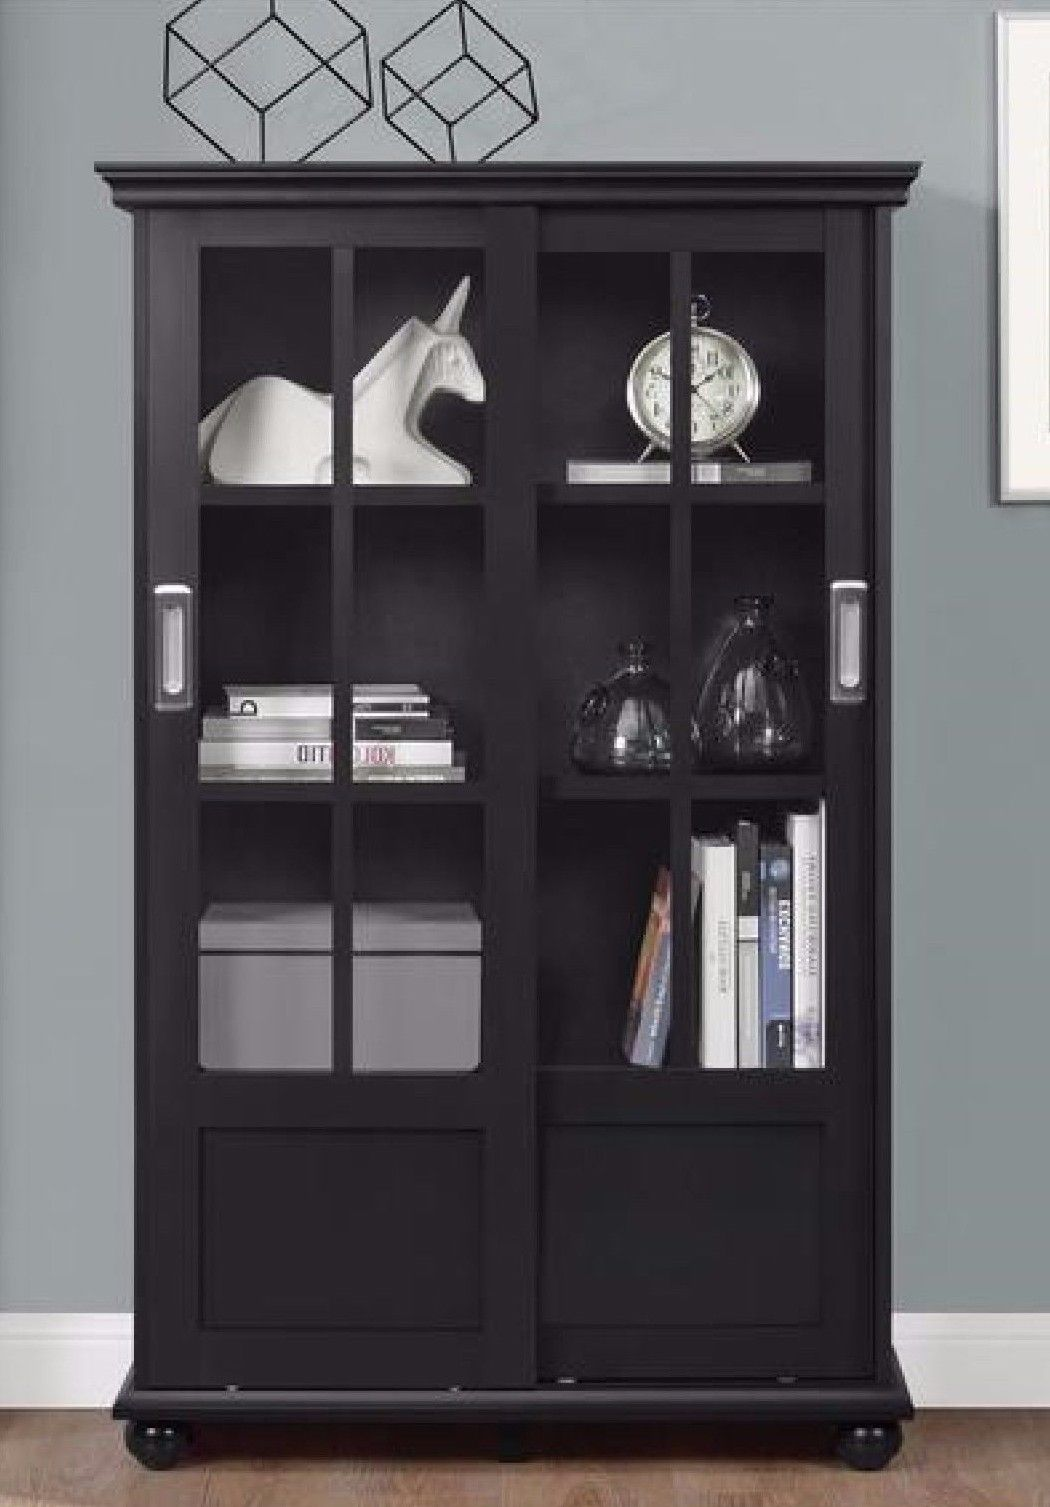 Glass Display Cabinet Bookshelf W Sliding Glass Doors